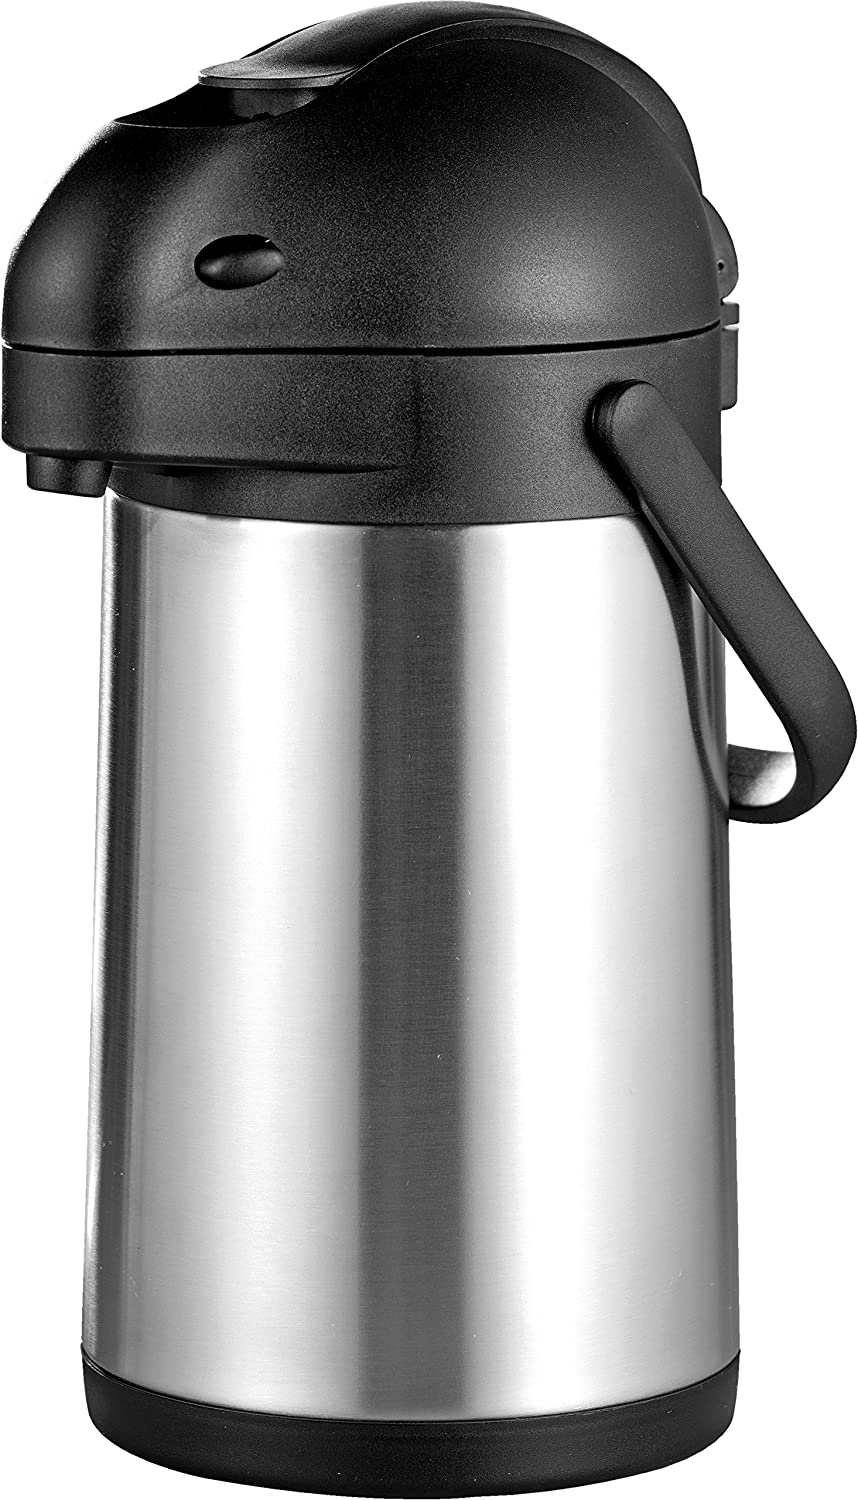 Esmeyer Airpot Stream 1, 9L, Black/Silver 305-039